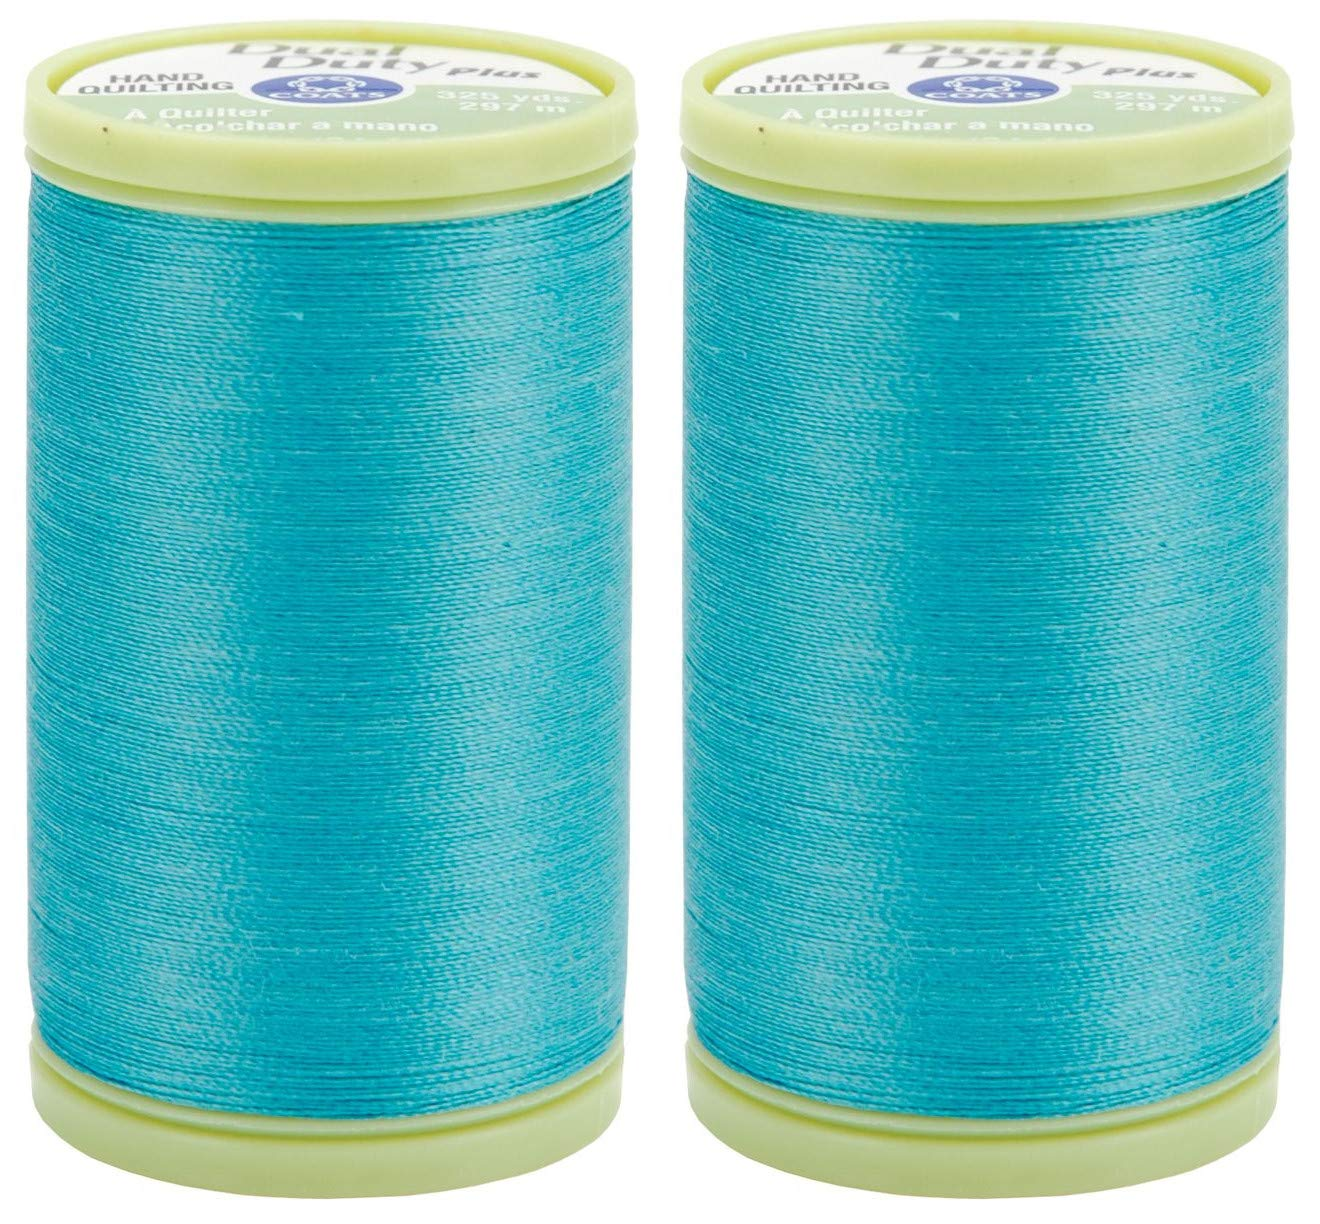 Coats /& Clark Dual Duty Plus Hand Quilting Thread 325yds River Blue s960-5450 2-Pack